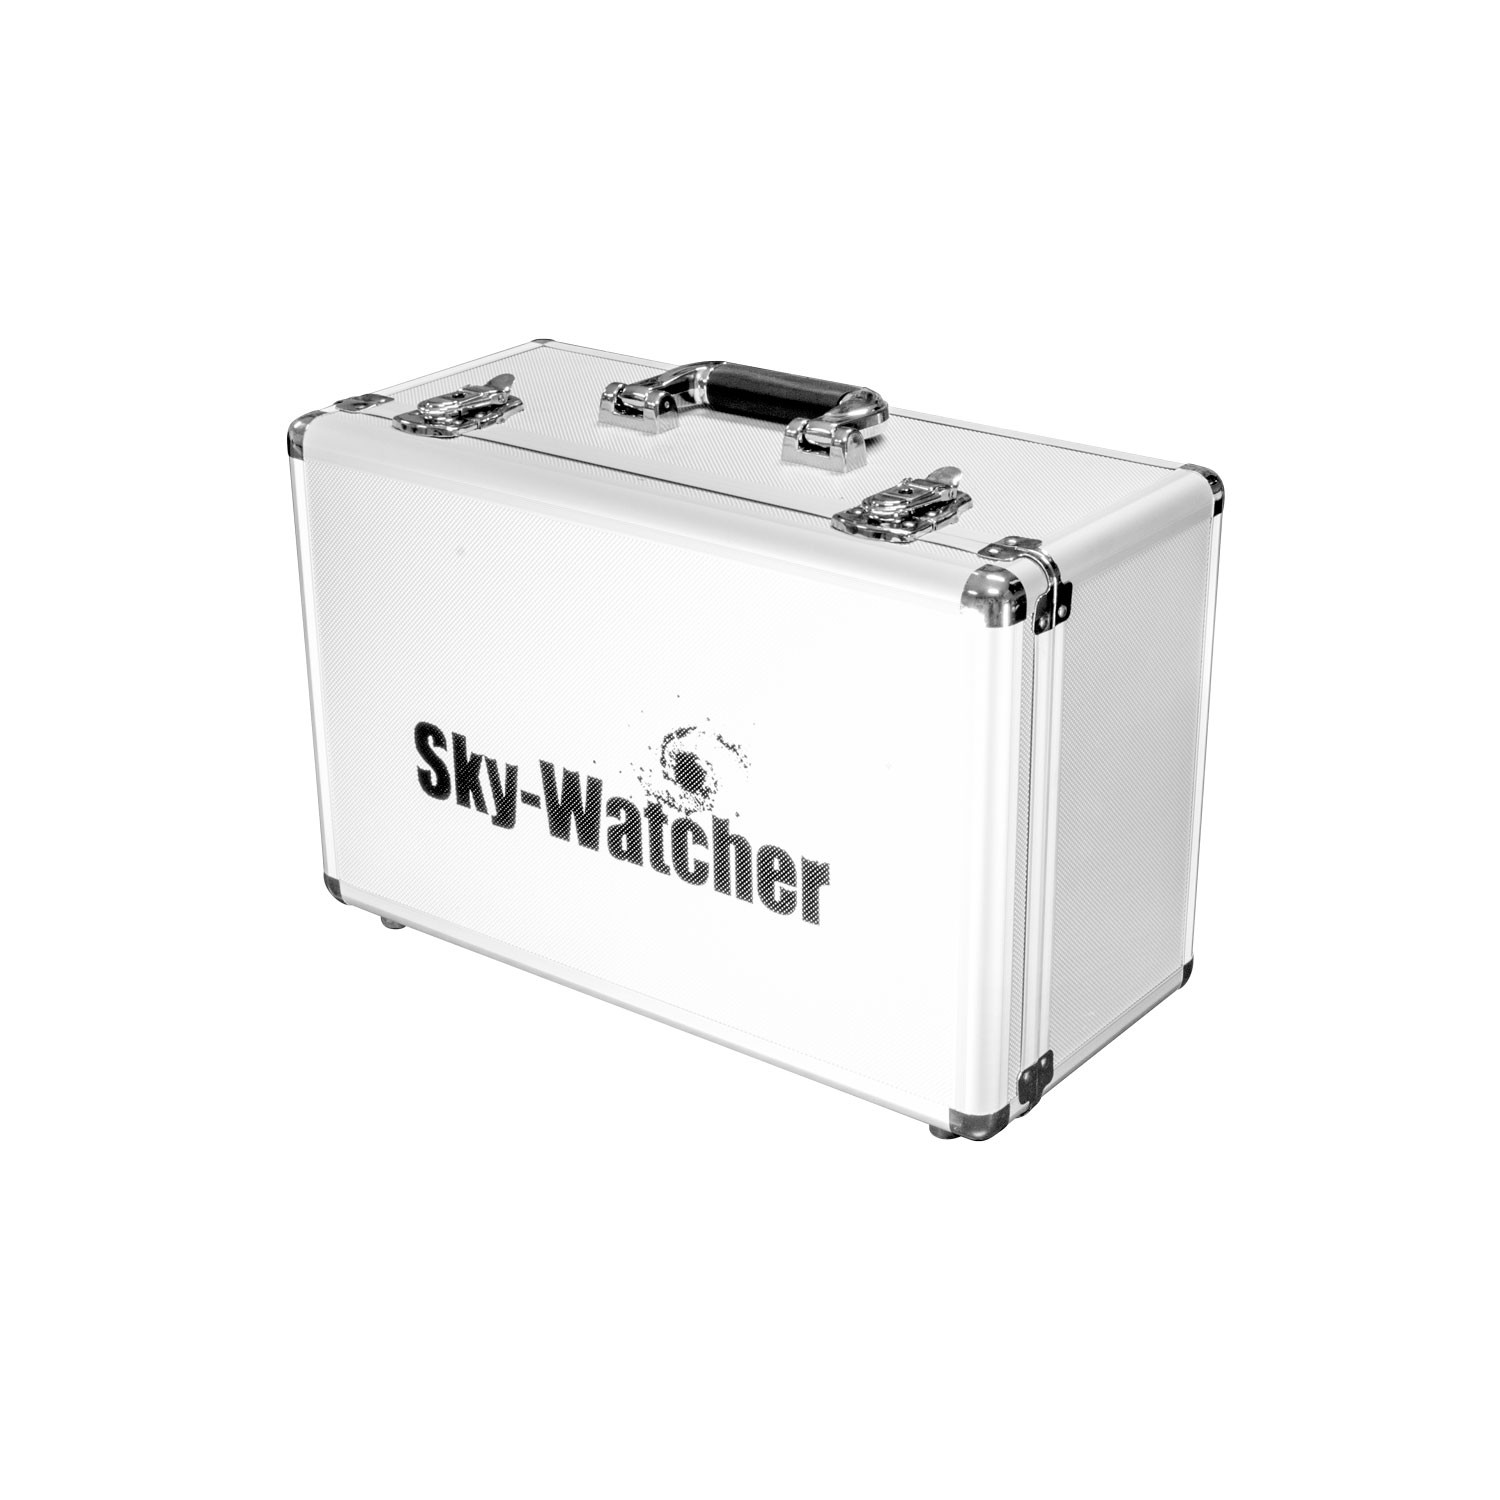 Sky-Watcher Aluminium HEQ5 Hard Case